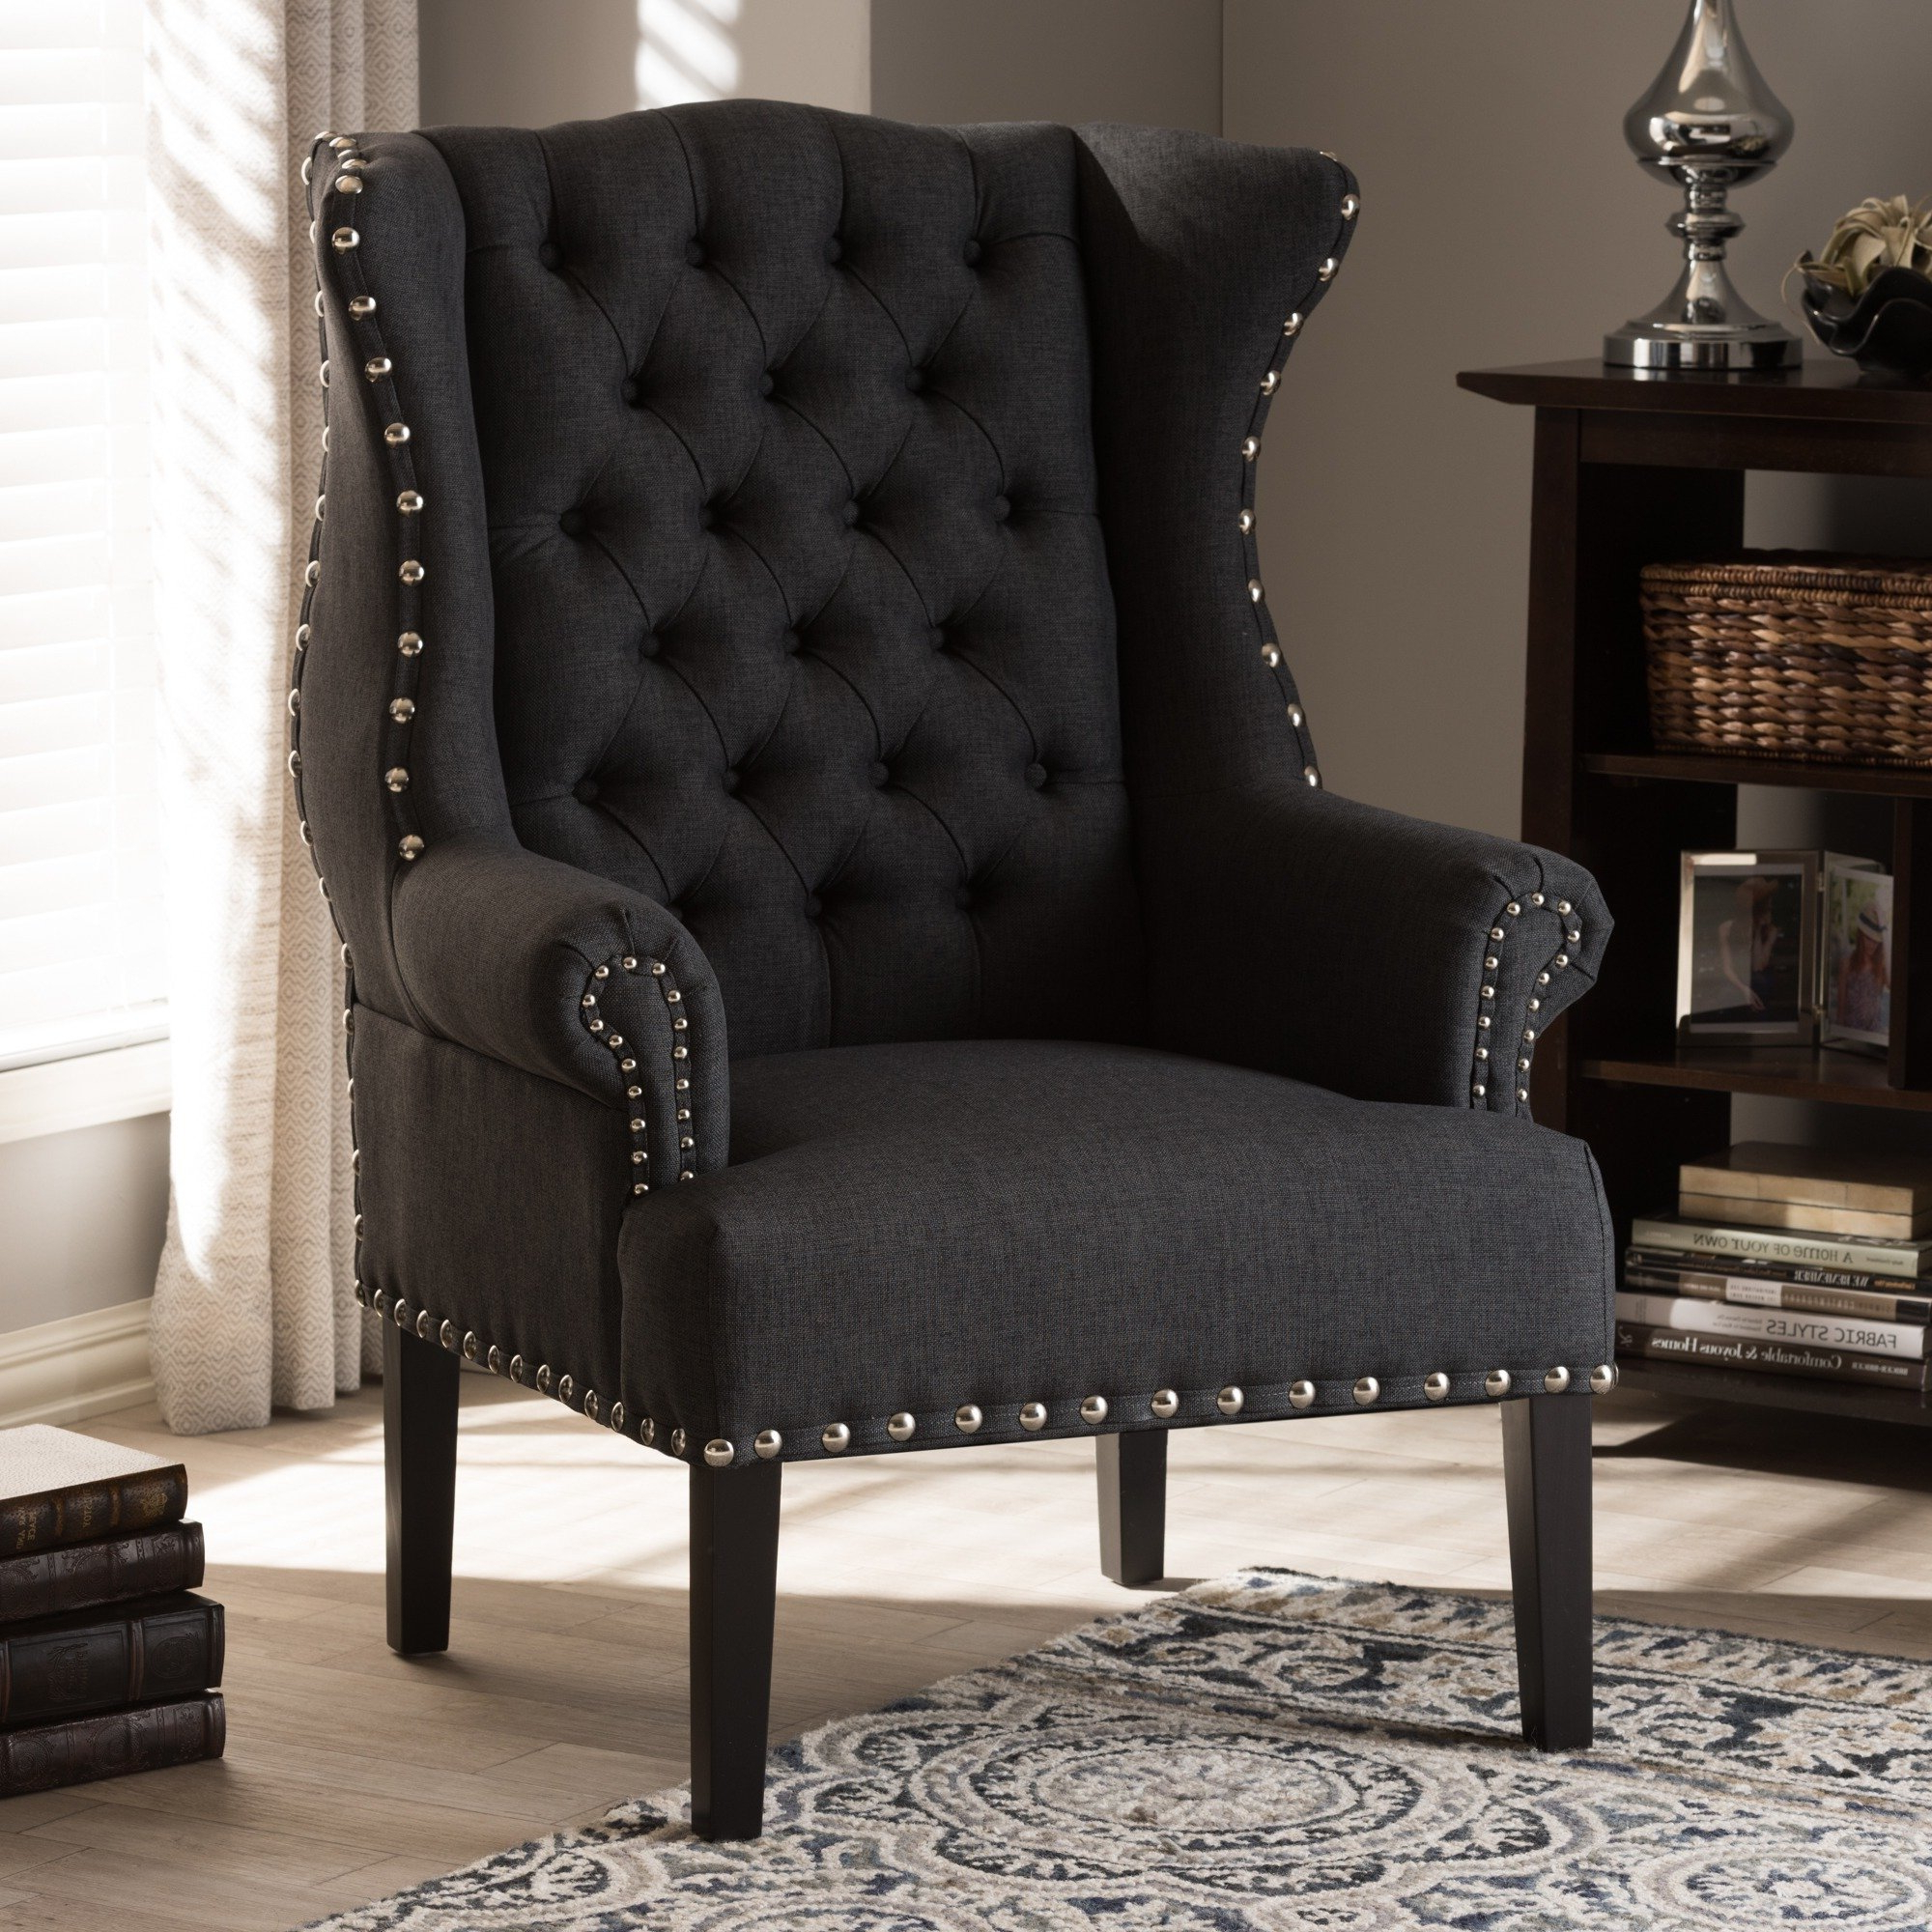 2018 Shop Baxton Studio Patterson Grey Linen And Burlap Upholstered Regarding Patterson Ii Arm Sofa Chairs (Gallery 12 of 20)